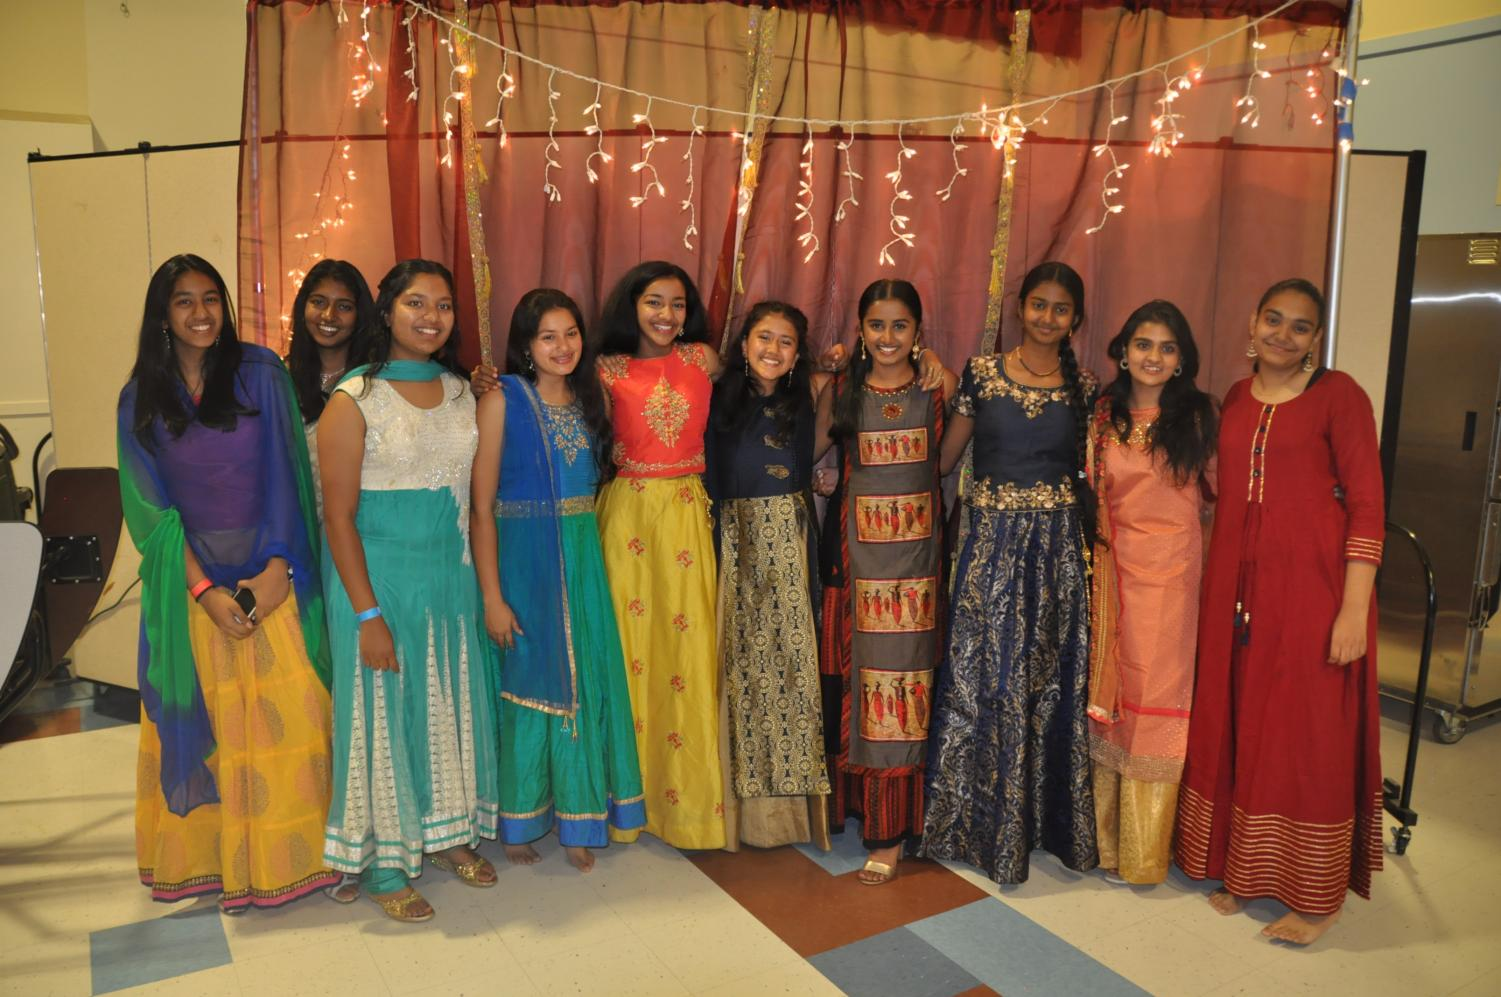 Irvington students came together in a celebration of Indian culture.